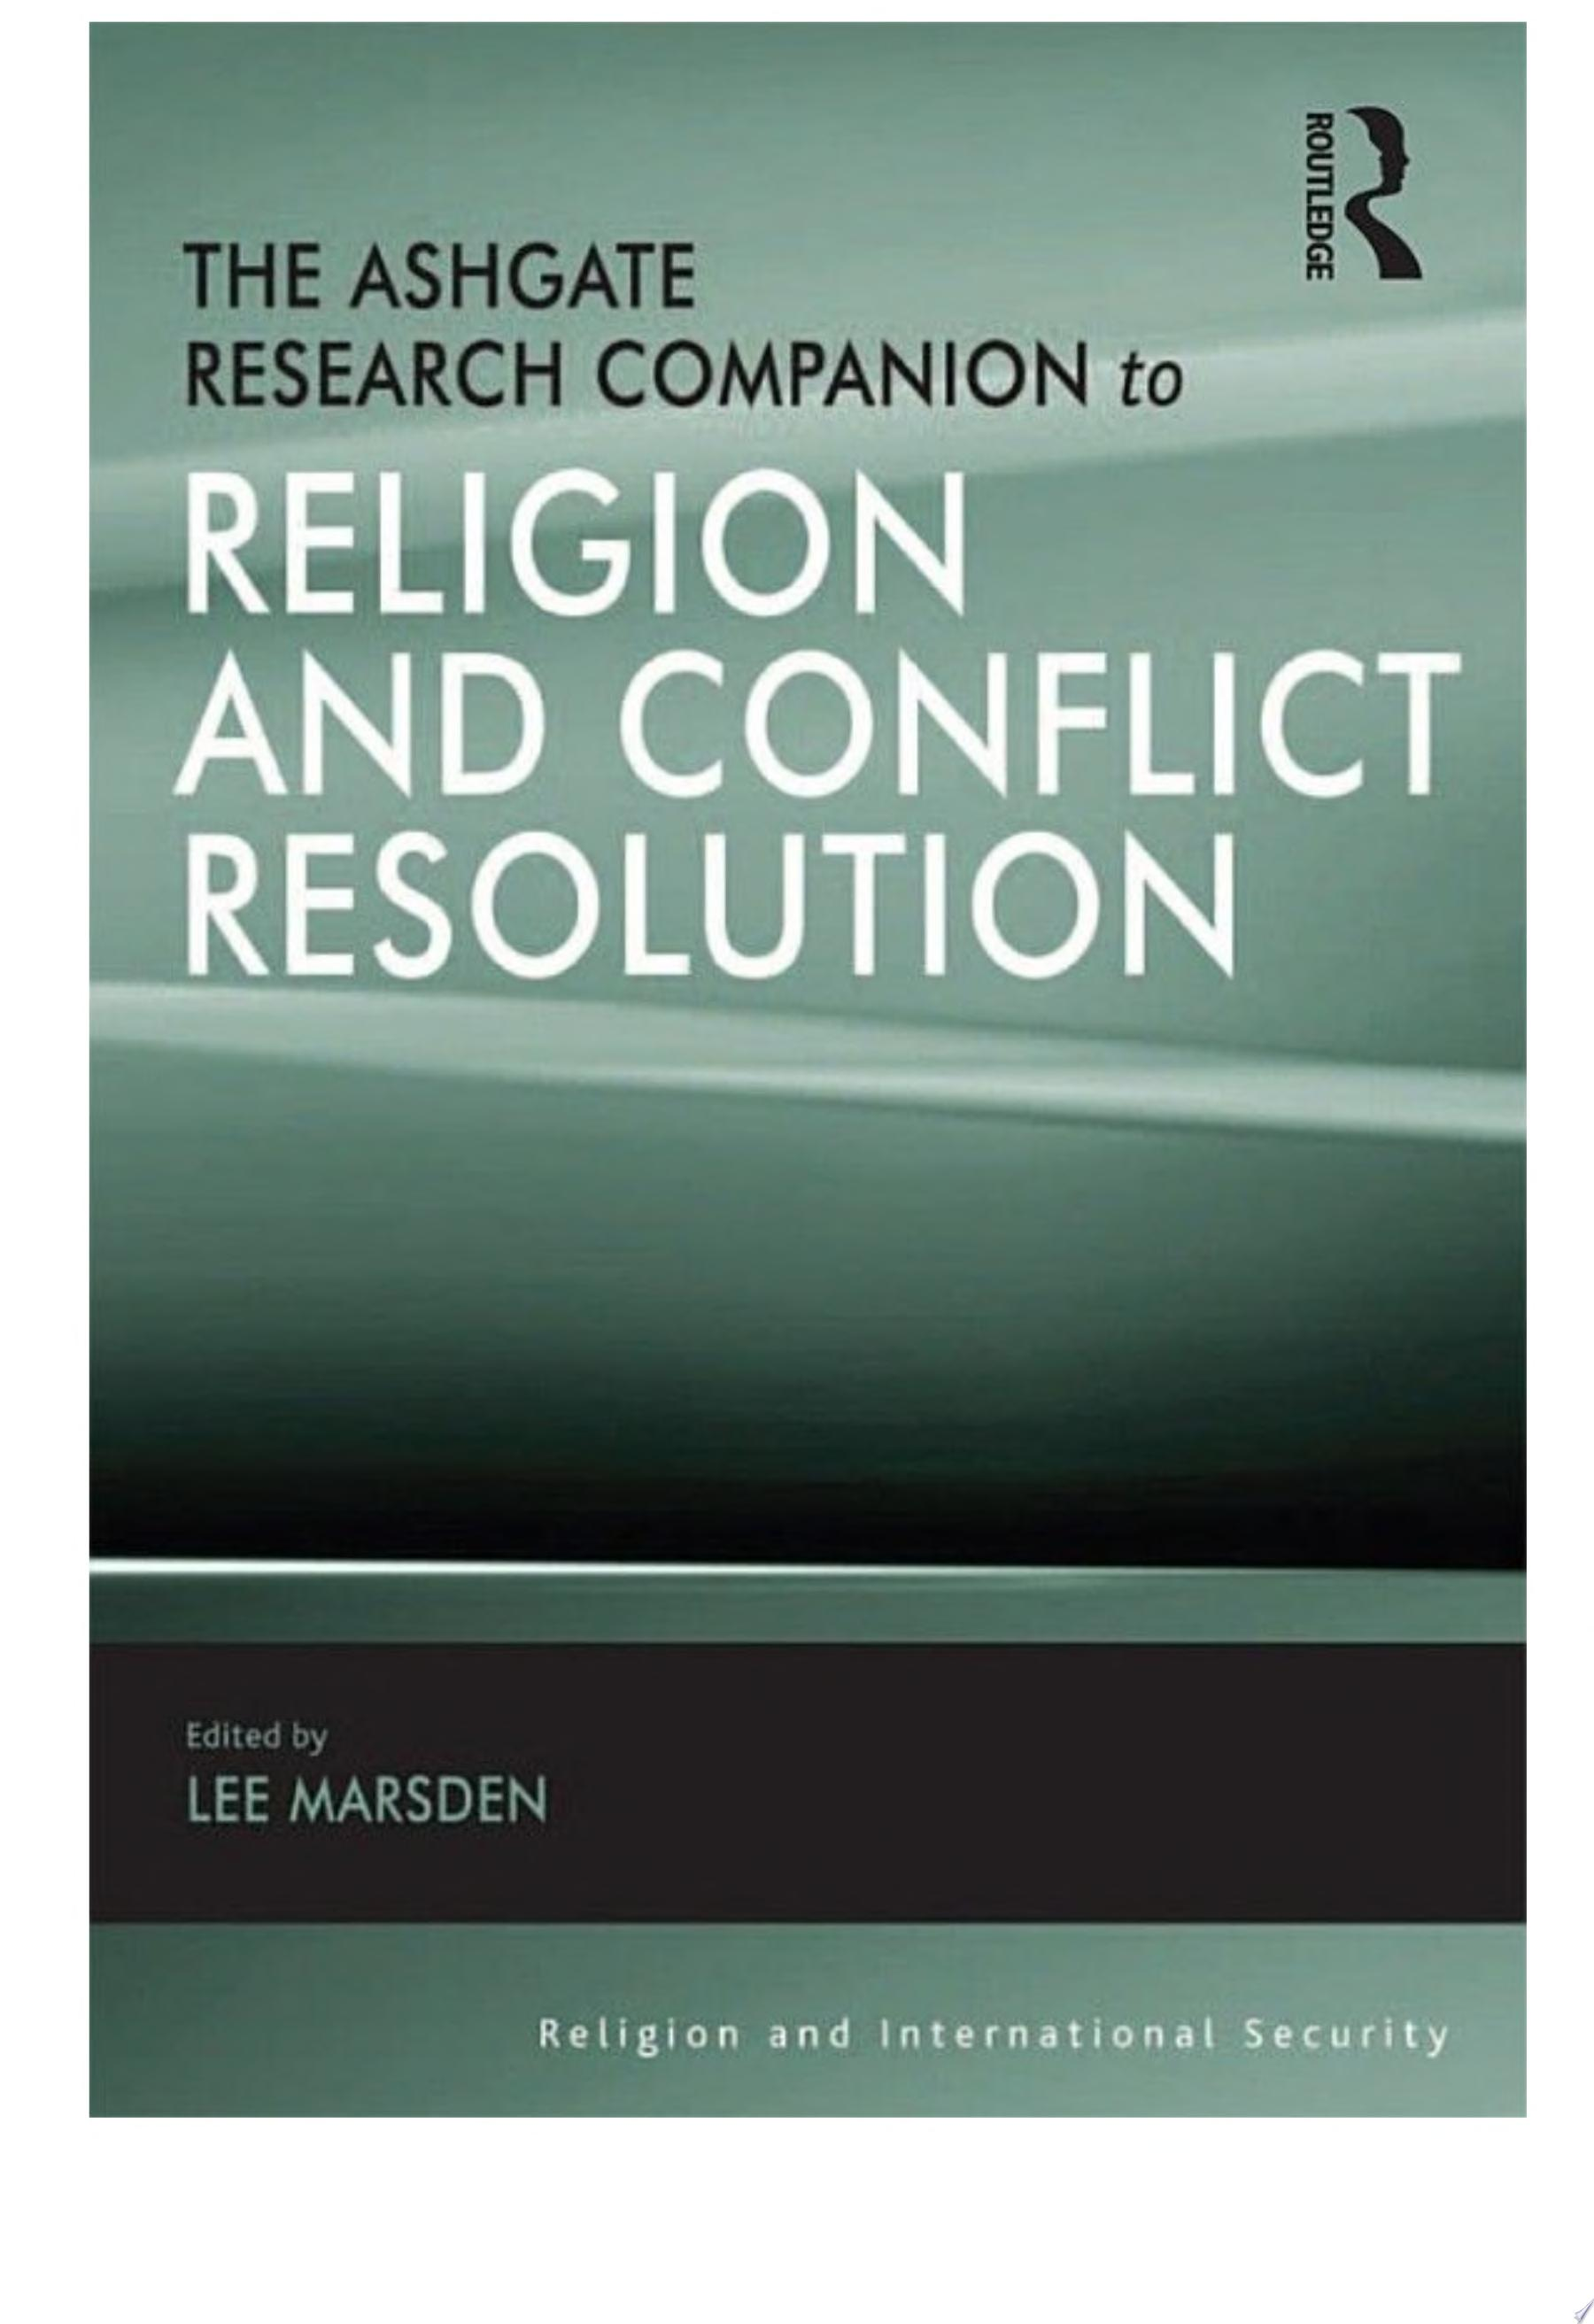 The Ashgate Research Companion to Religion and Conflict Resolution